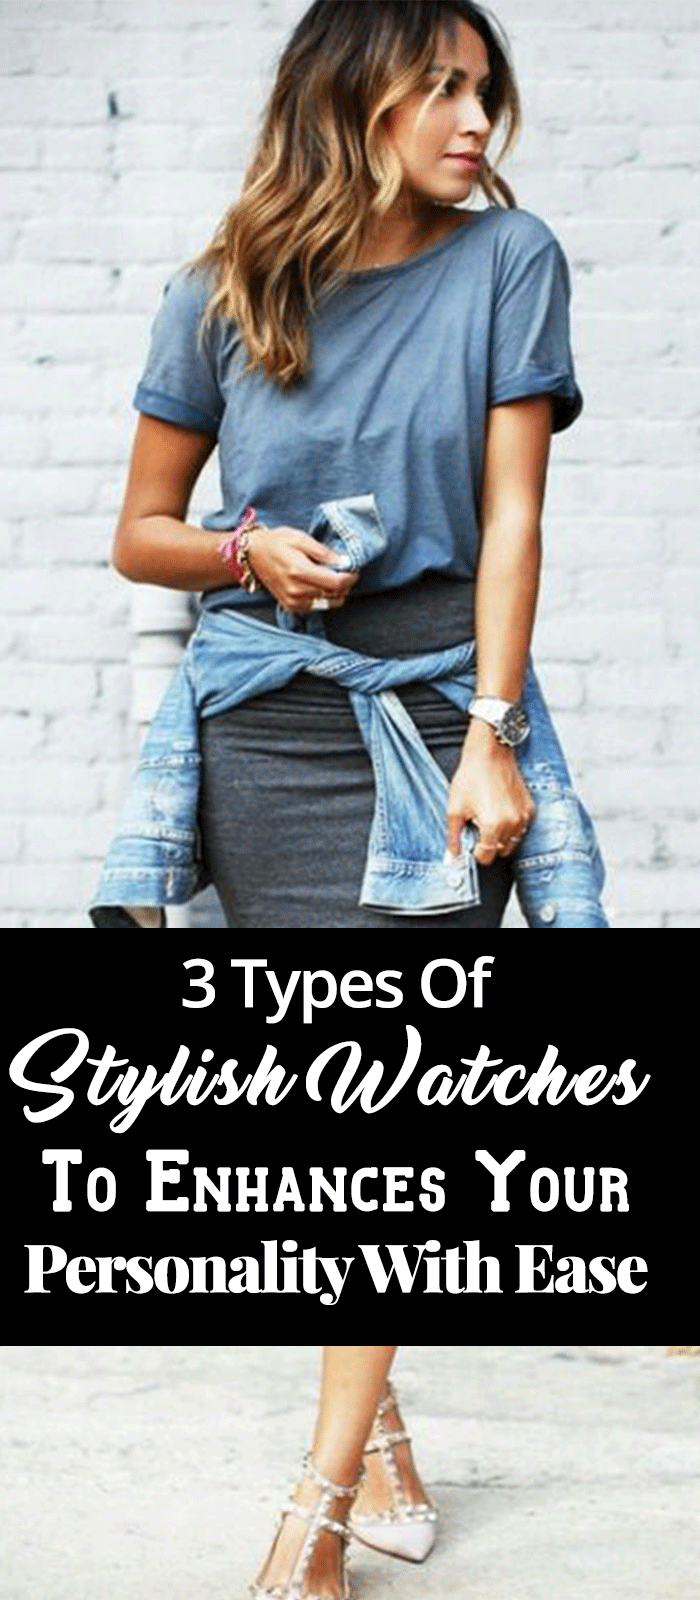 3 Types Of Stylish Watches To Enhances Your Personality With Ease